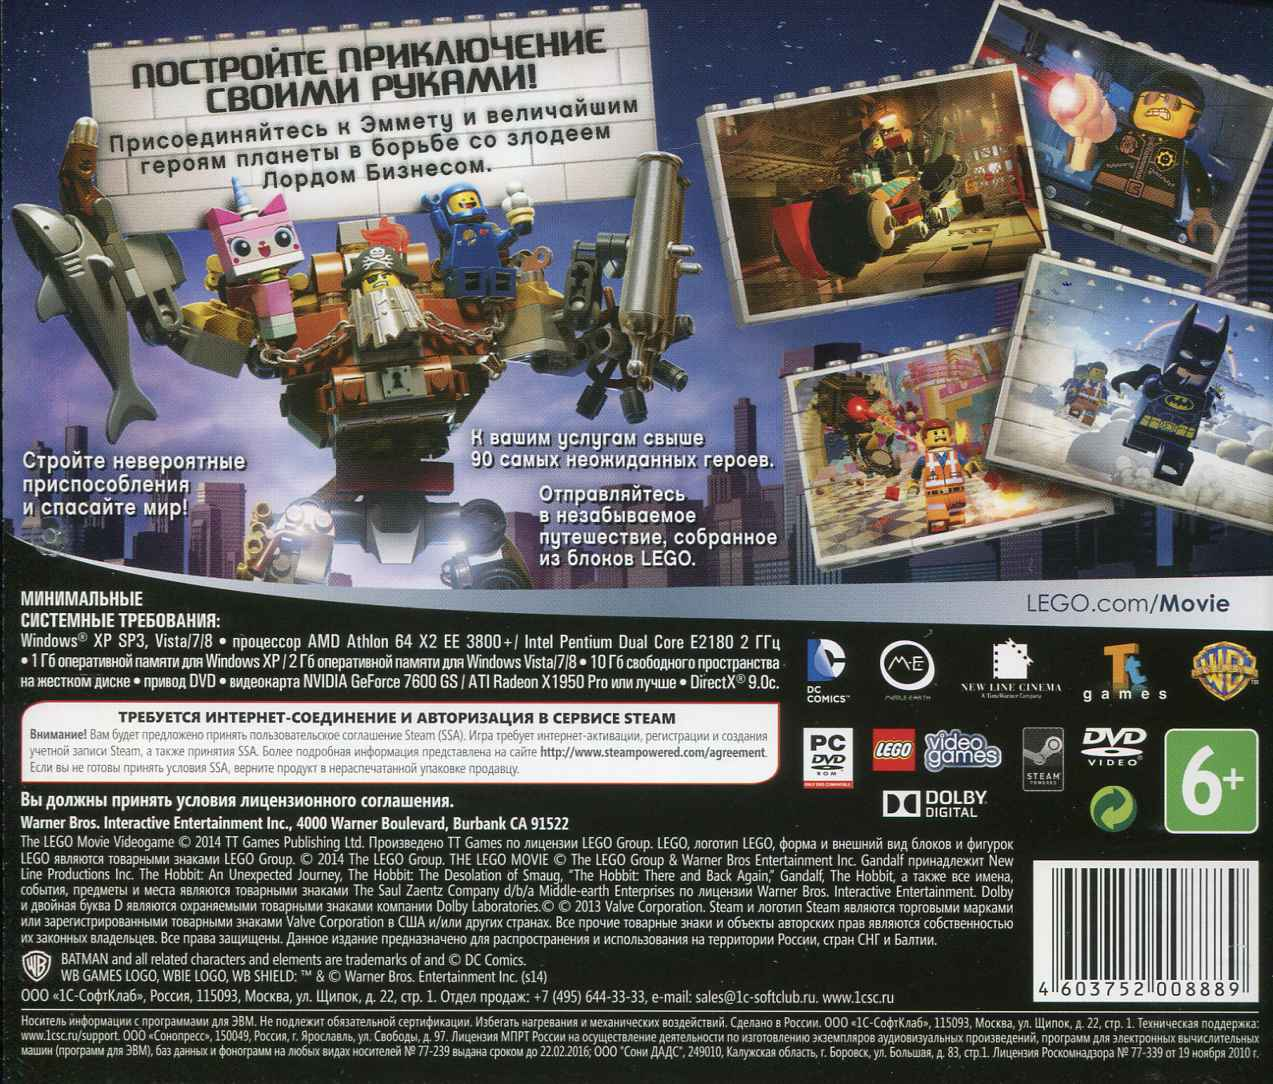 LEGO Movie Videogame (Activation key in Steam)